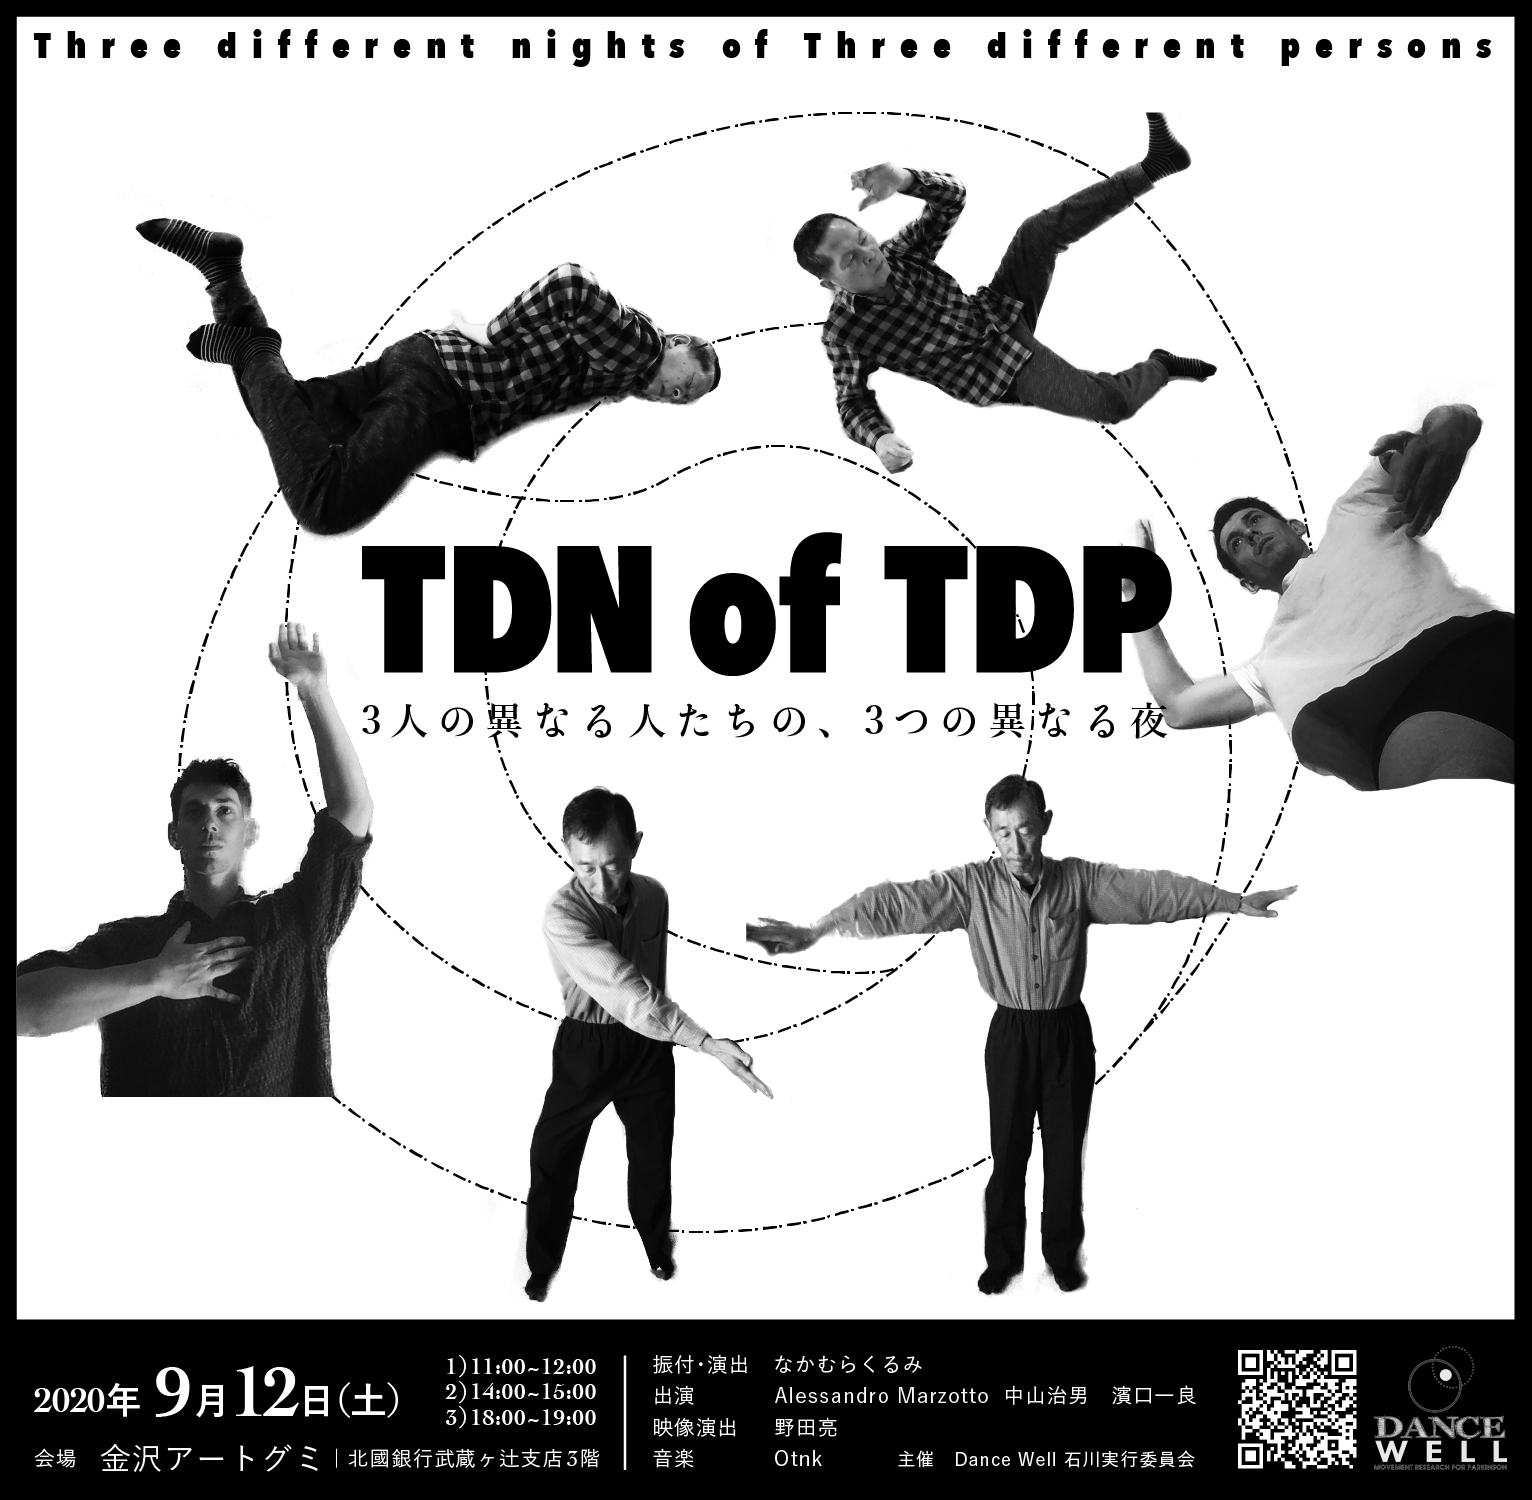 9/12  TDN of TDP (three different nights of three different persons)〜3人の異なる人たちの、3つの異なる夜